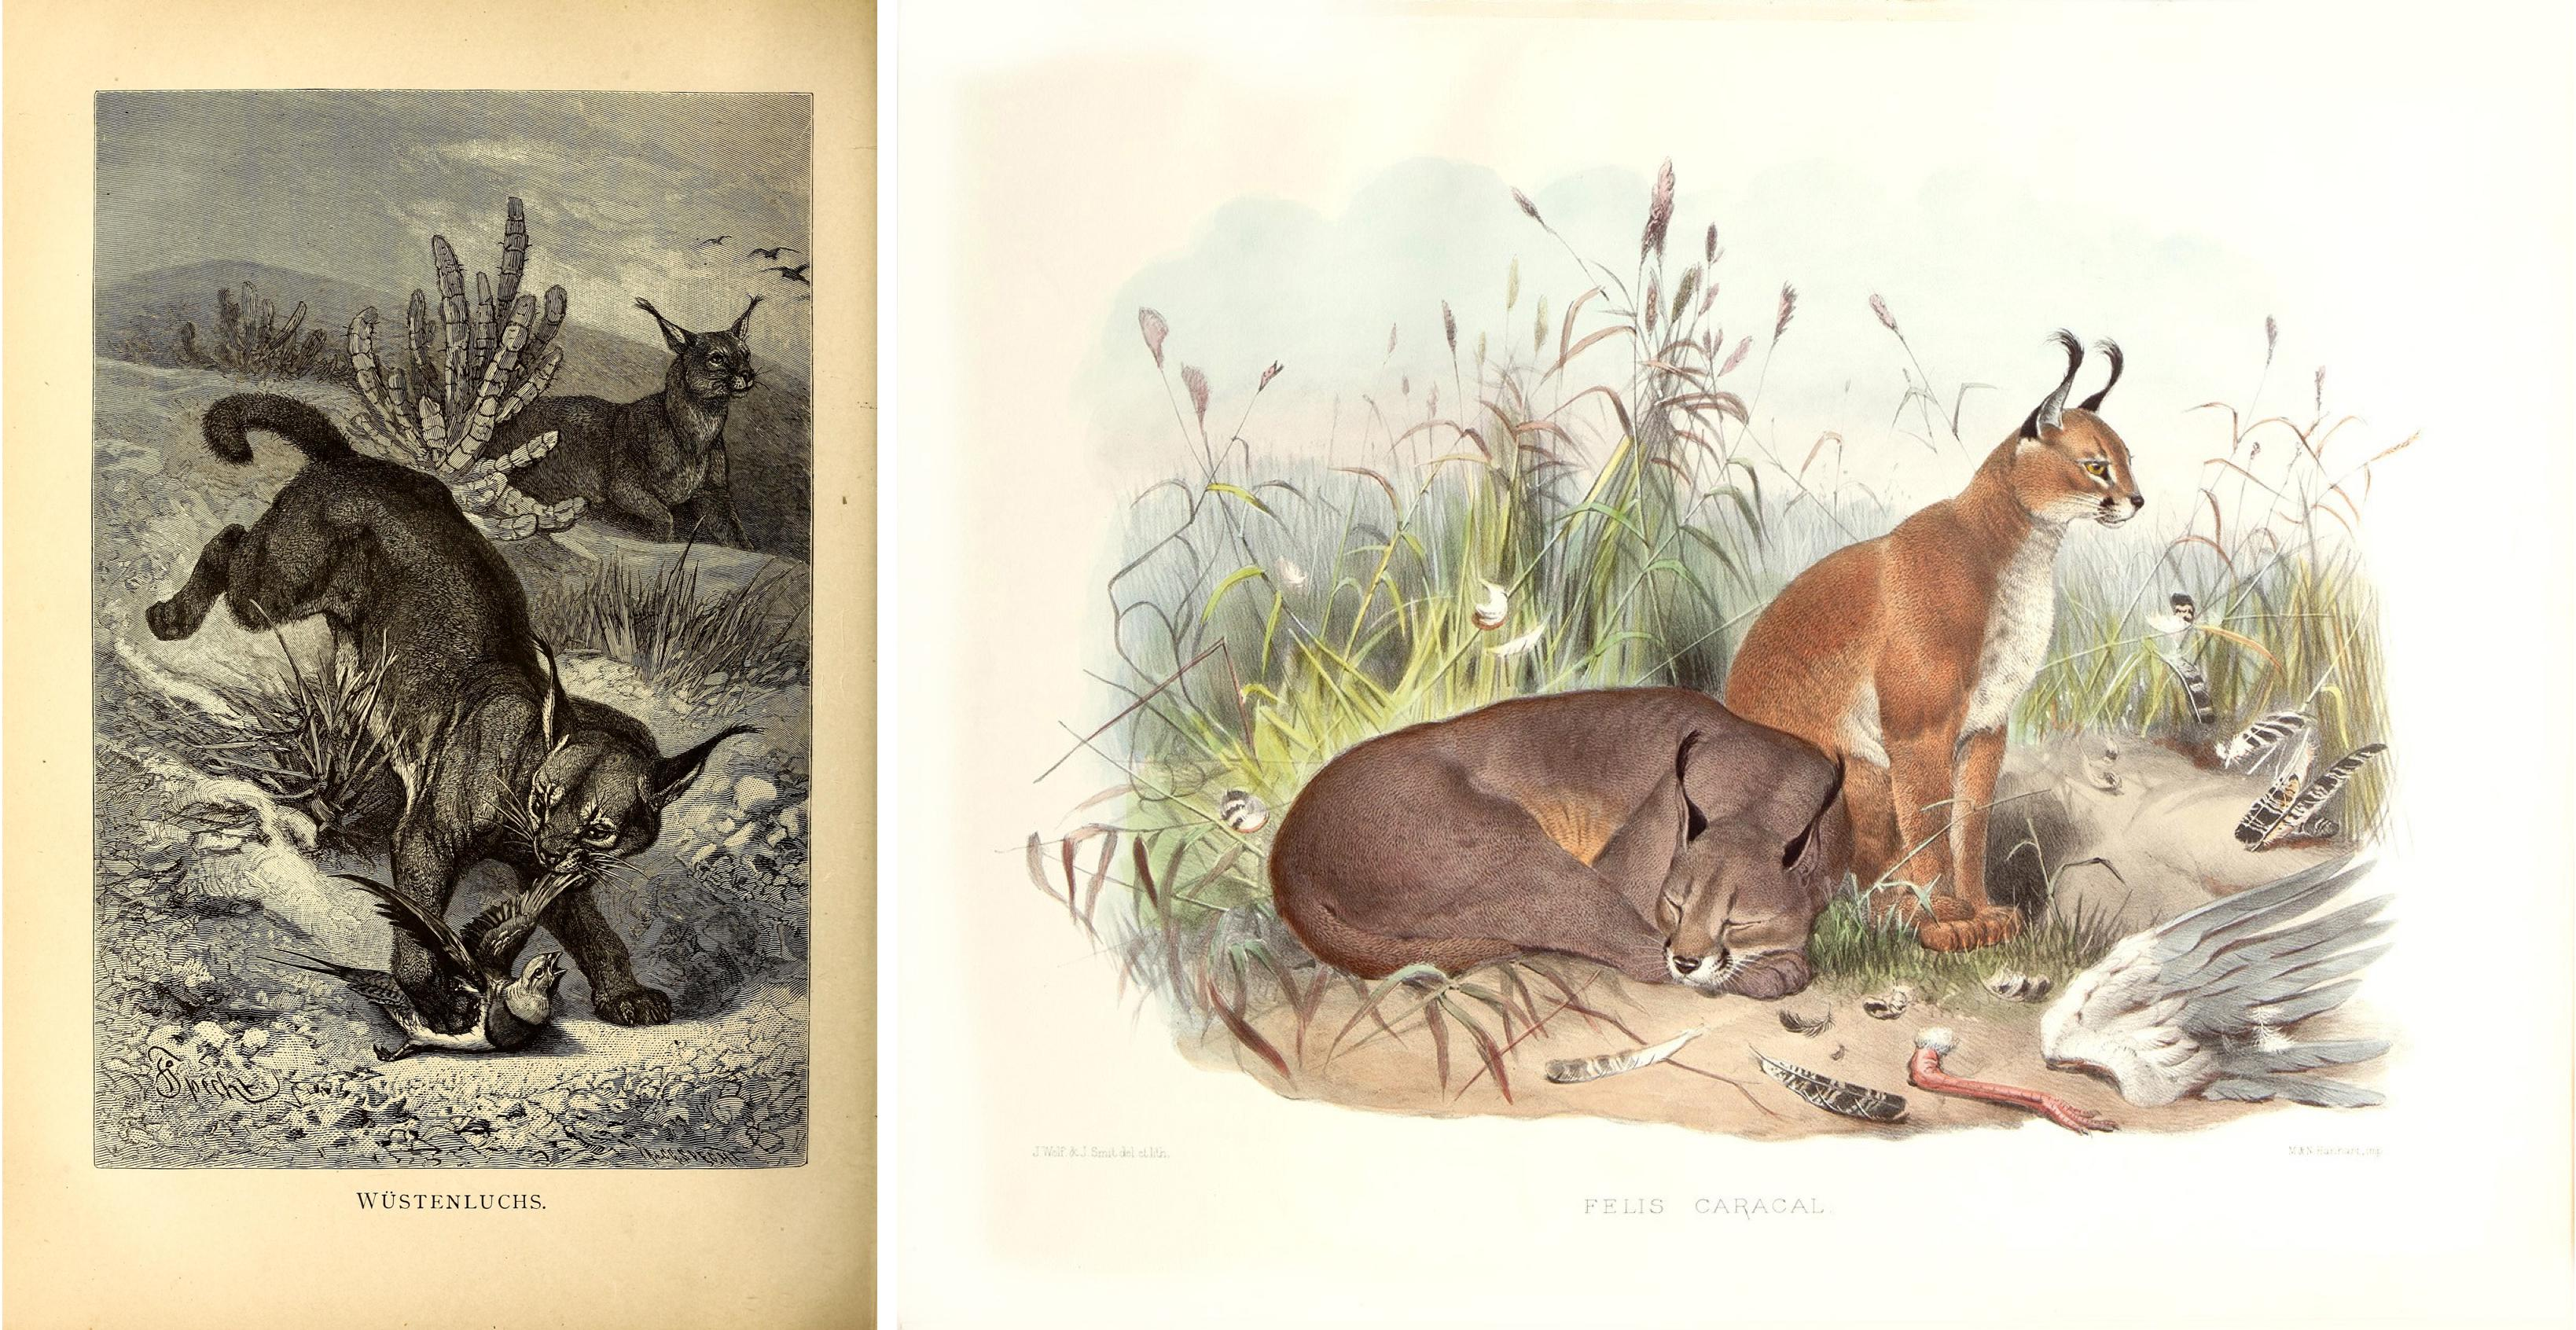 This sketch of a caracal hunting a bird (left) is from volume 1 of  Brehms Tierleben: allgemeine Kunde des Tierreichs  (1890), a German natural history multivolume series by Alfred Edmund Brehm, Eduard Pechuel-Loesche, Wilhelm Haacke, and EH Schroeder. 